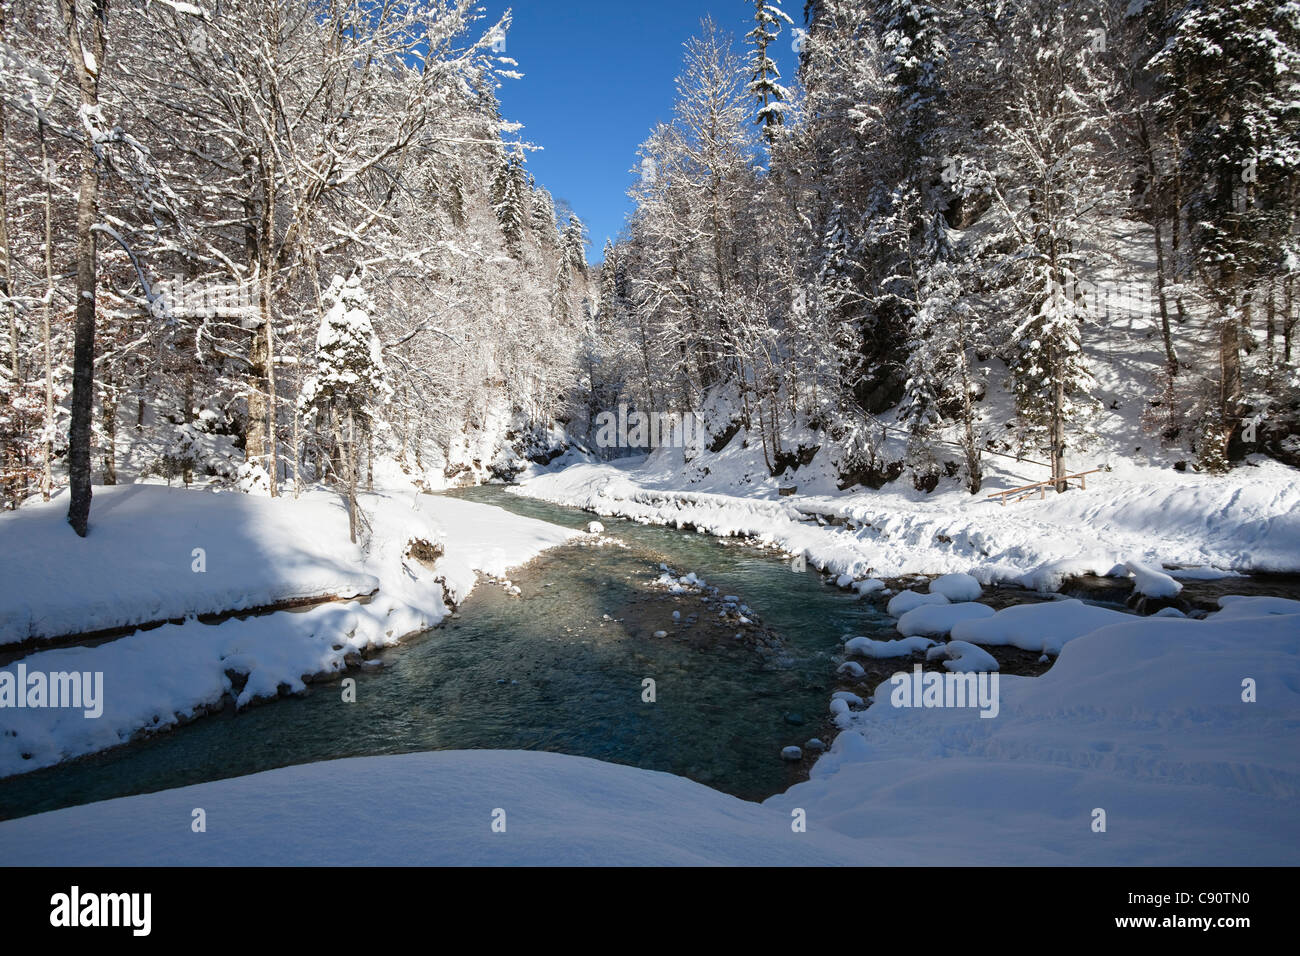 Partnach stream near Garmisch Partenkirchen, Upper Bavaria, Germany, Europe - Stock Image